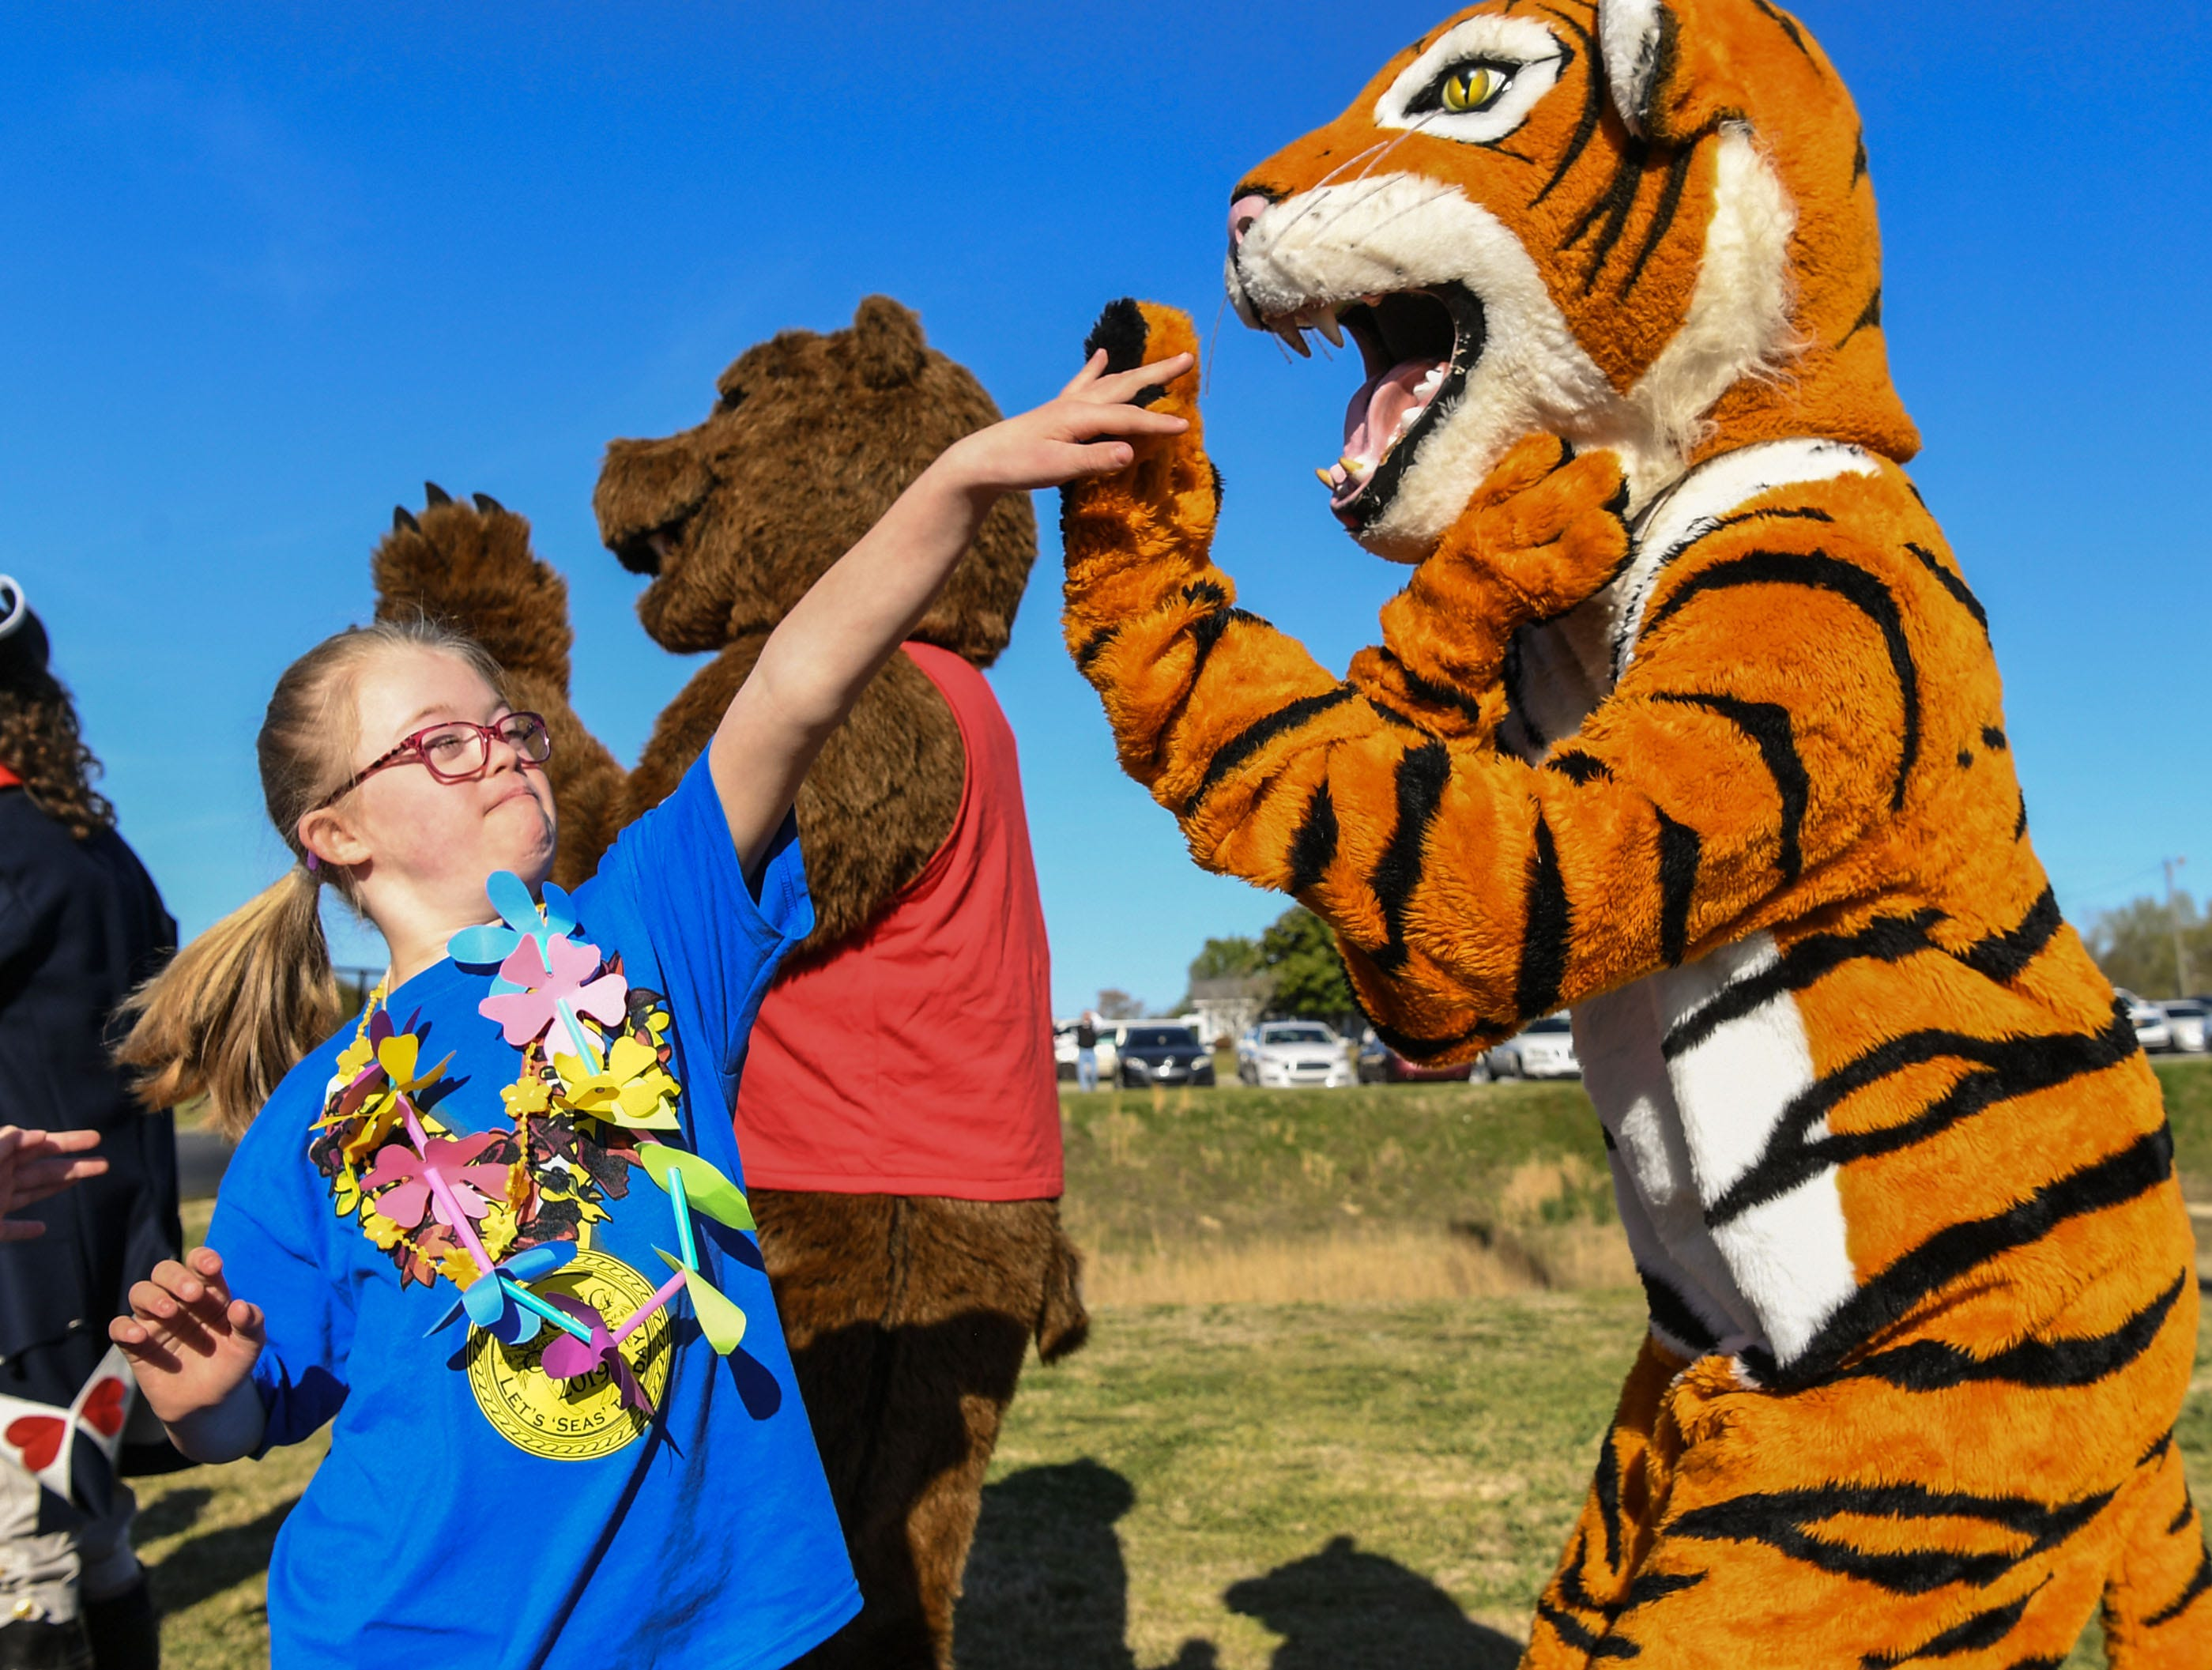 Athlete Gracie Selfridge of West Pelzer Elementary School gives a high-five to the Crescent High School tiger mascot before the Special Olympics South Carolina Area 14 Spring Games at Marlee Gambrell field at Belton-Honea Path High School Wednesday.